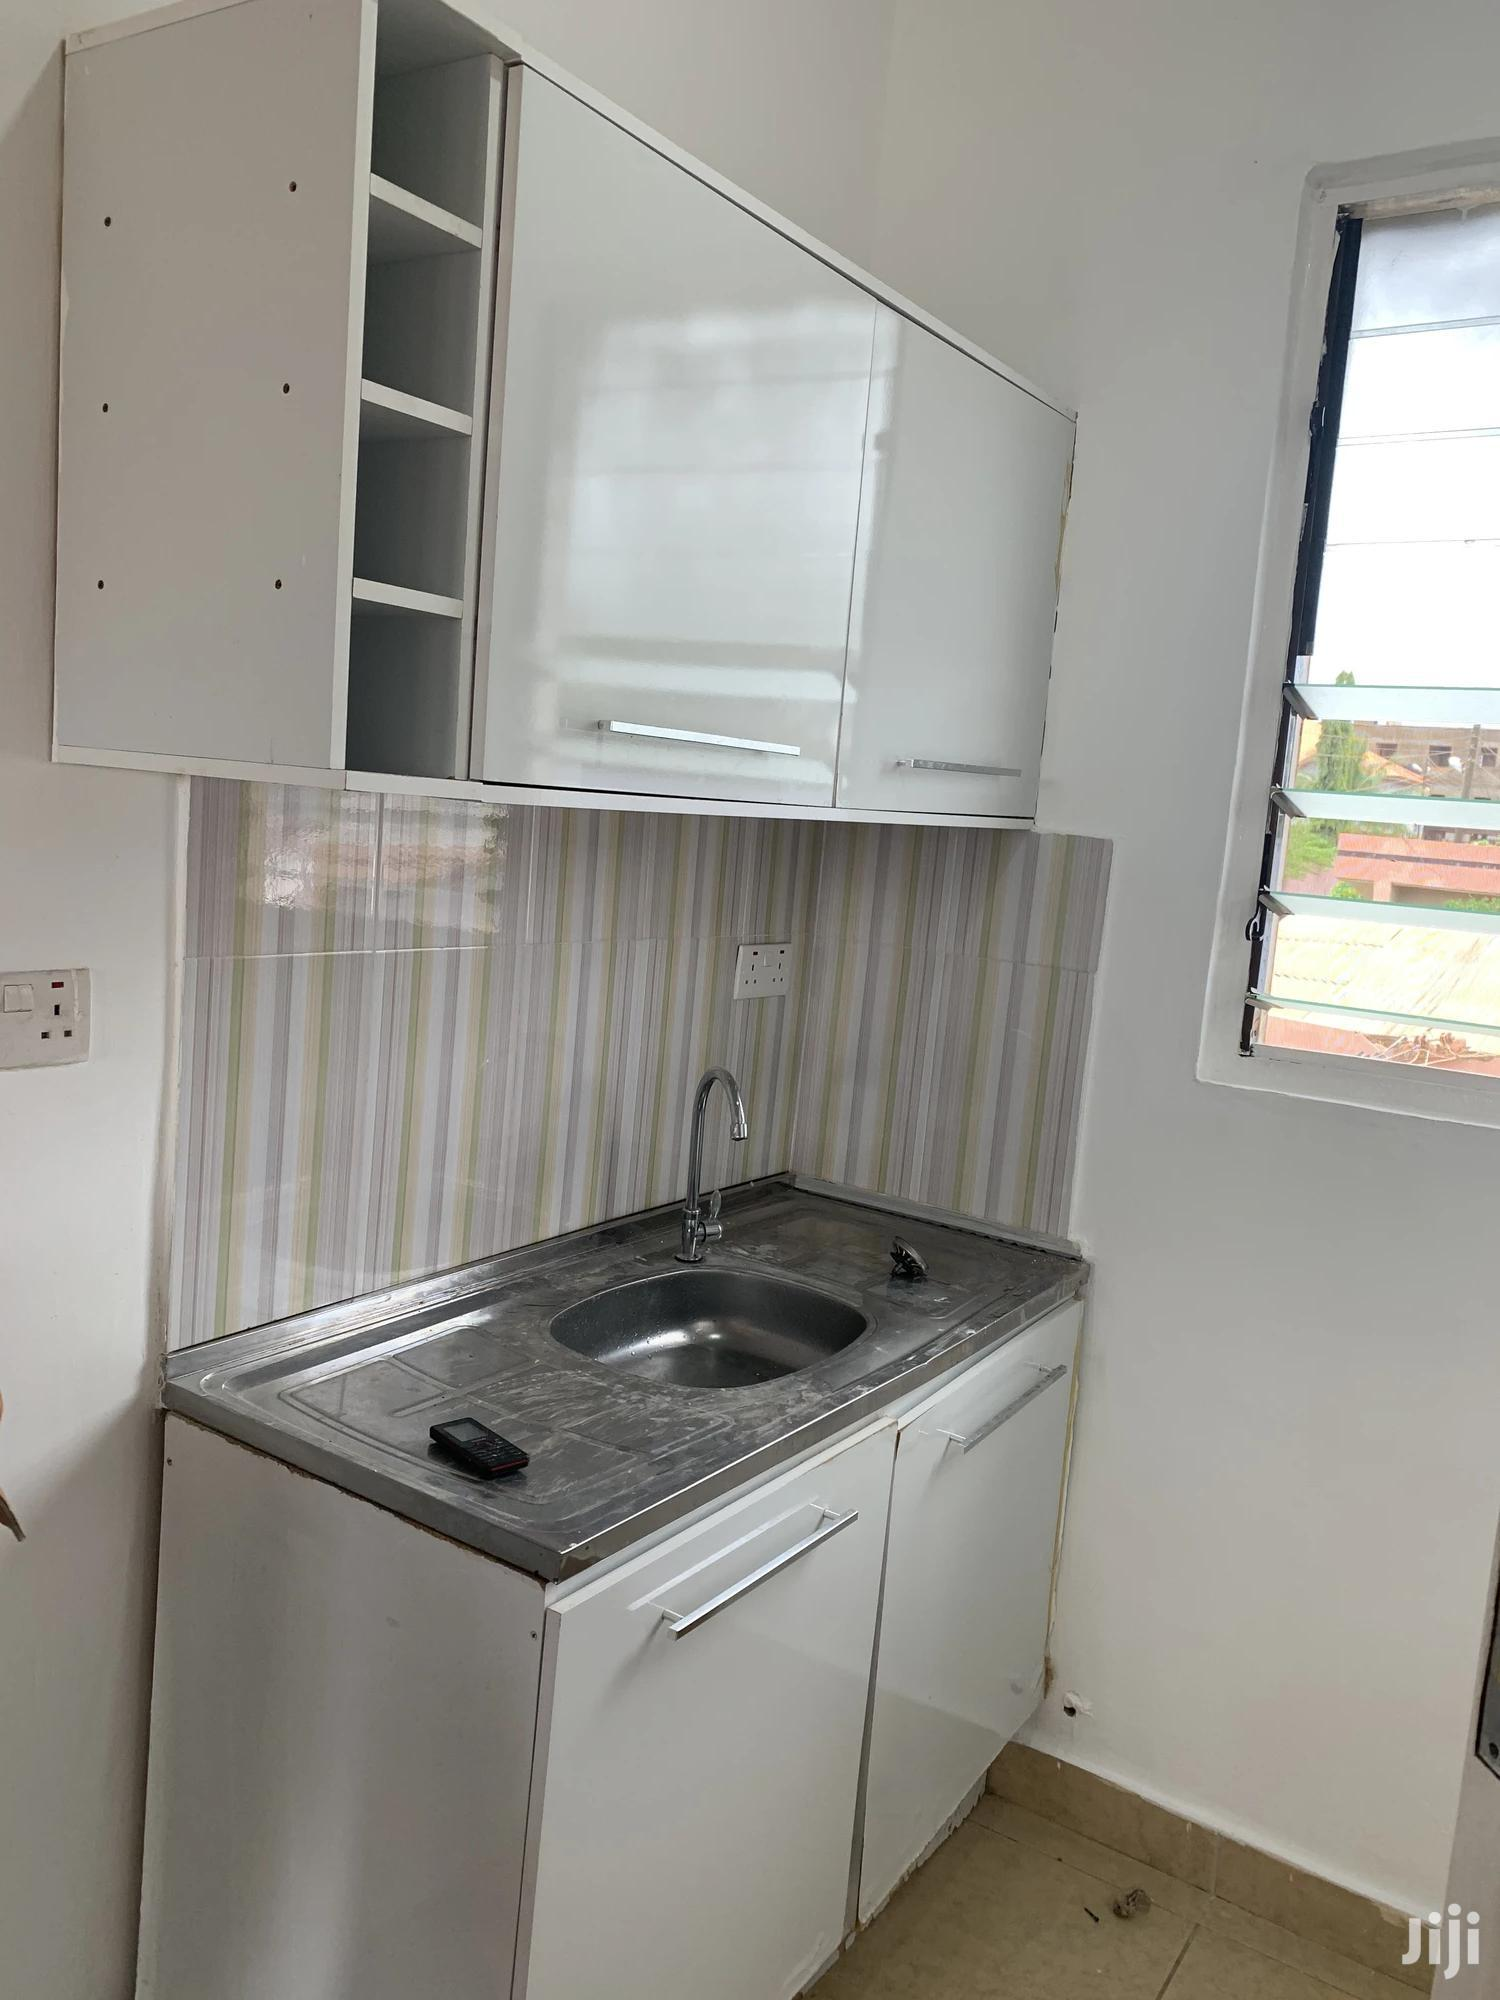 Single Room Self Contained For Rent At East Legon   Houses & Apartments For Rent for sale in East Legon, Greater Accra, Ghana